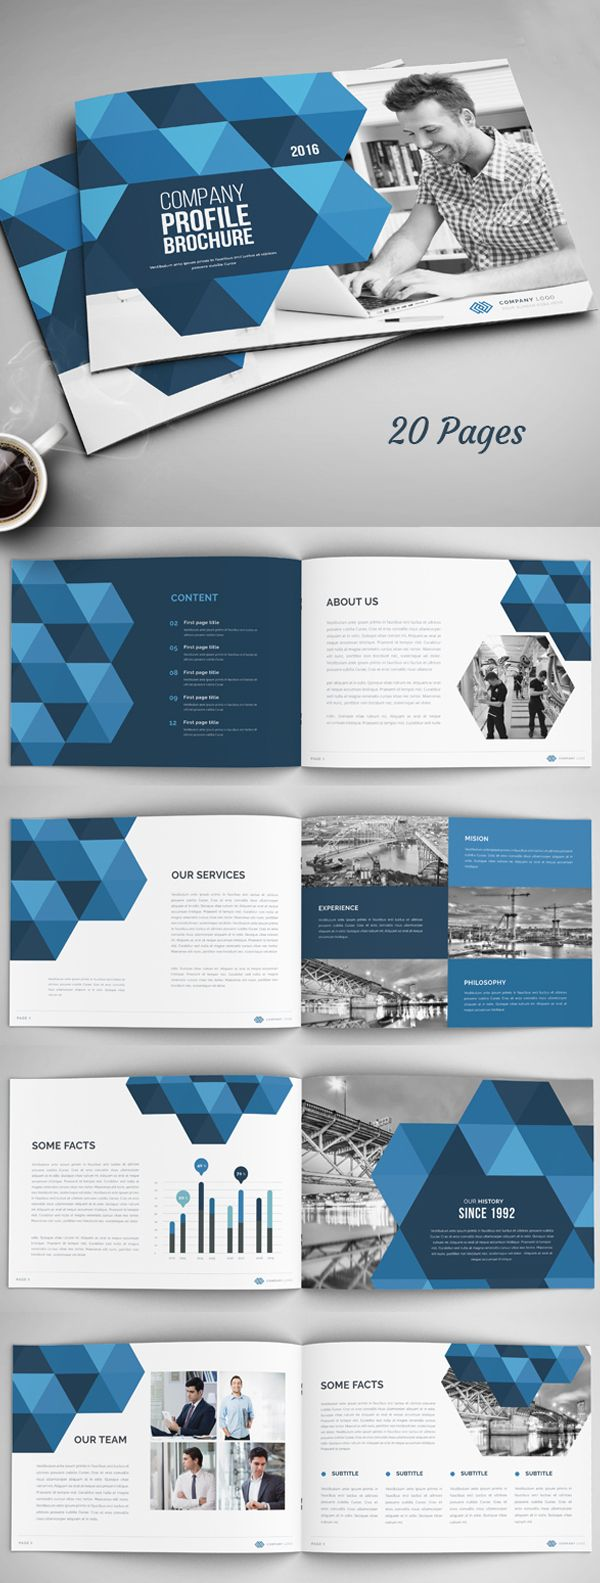 Best 25 company profile design ideas on pinterest for Service design firms